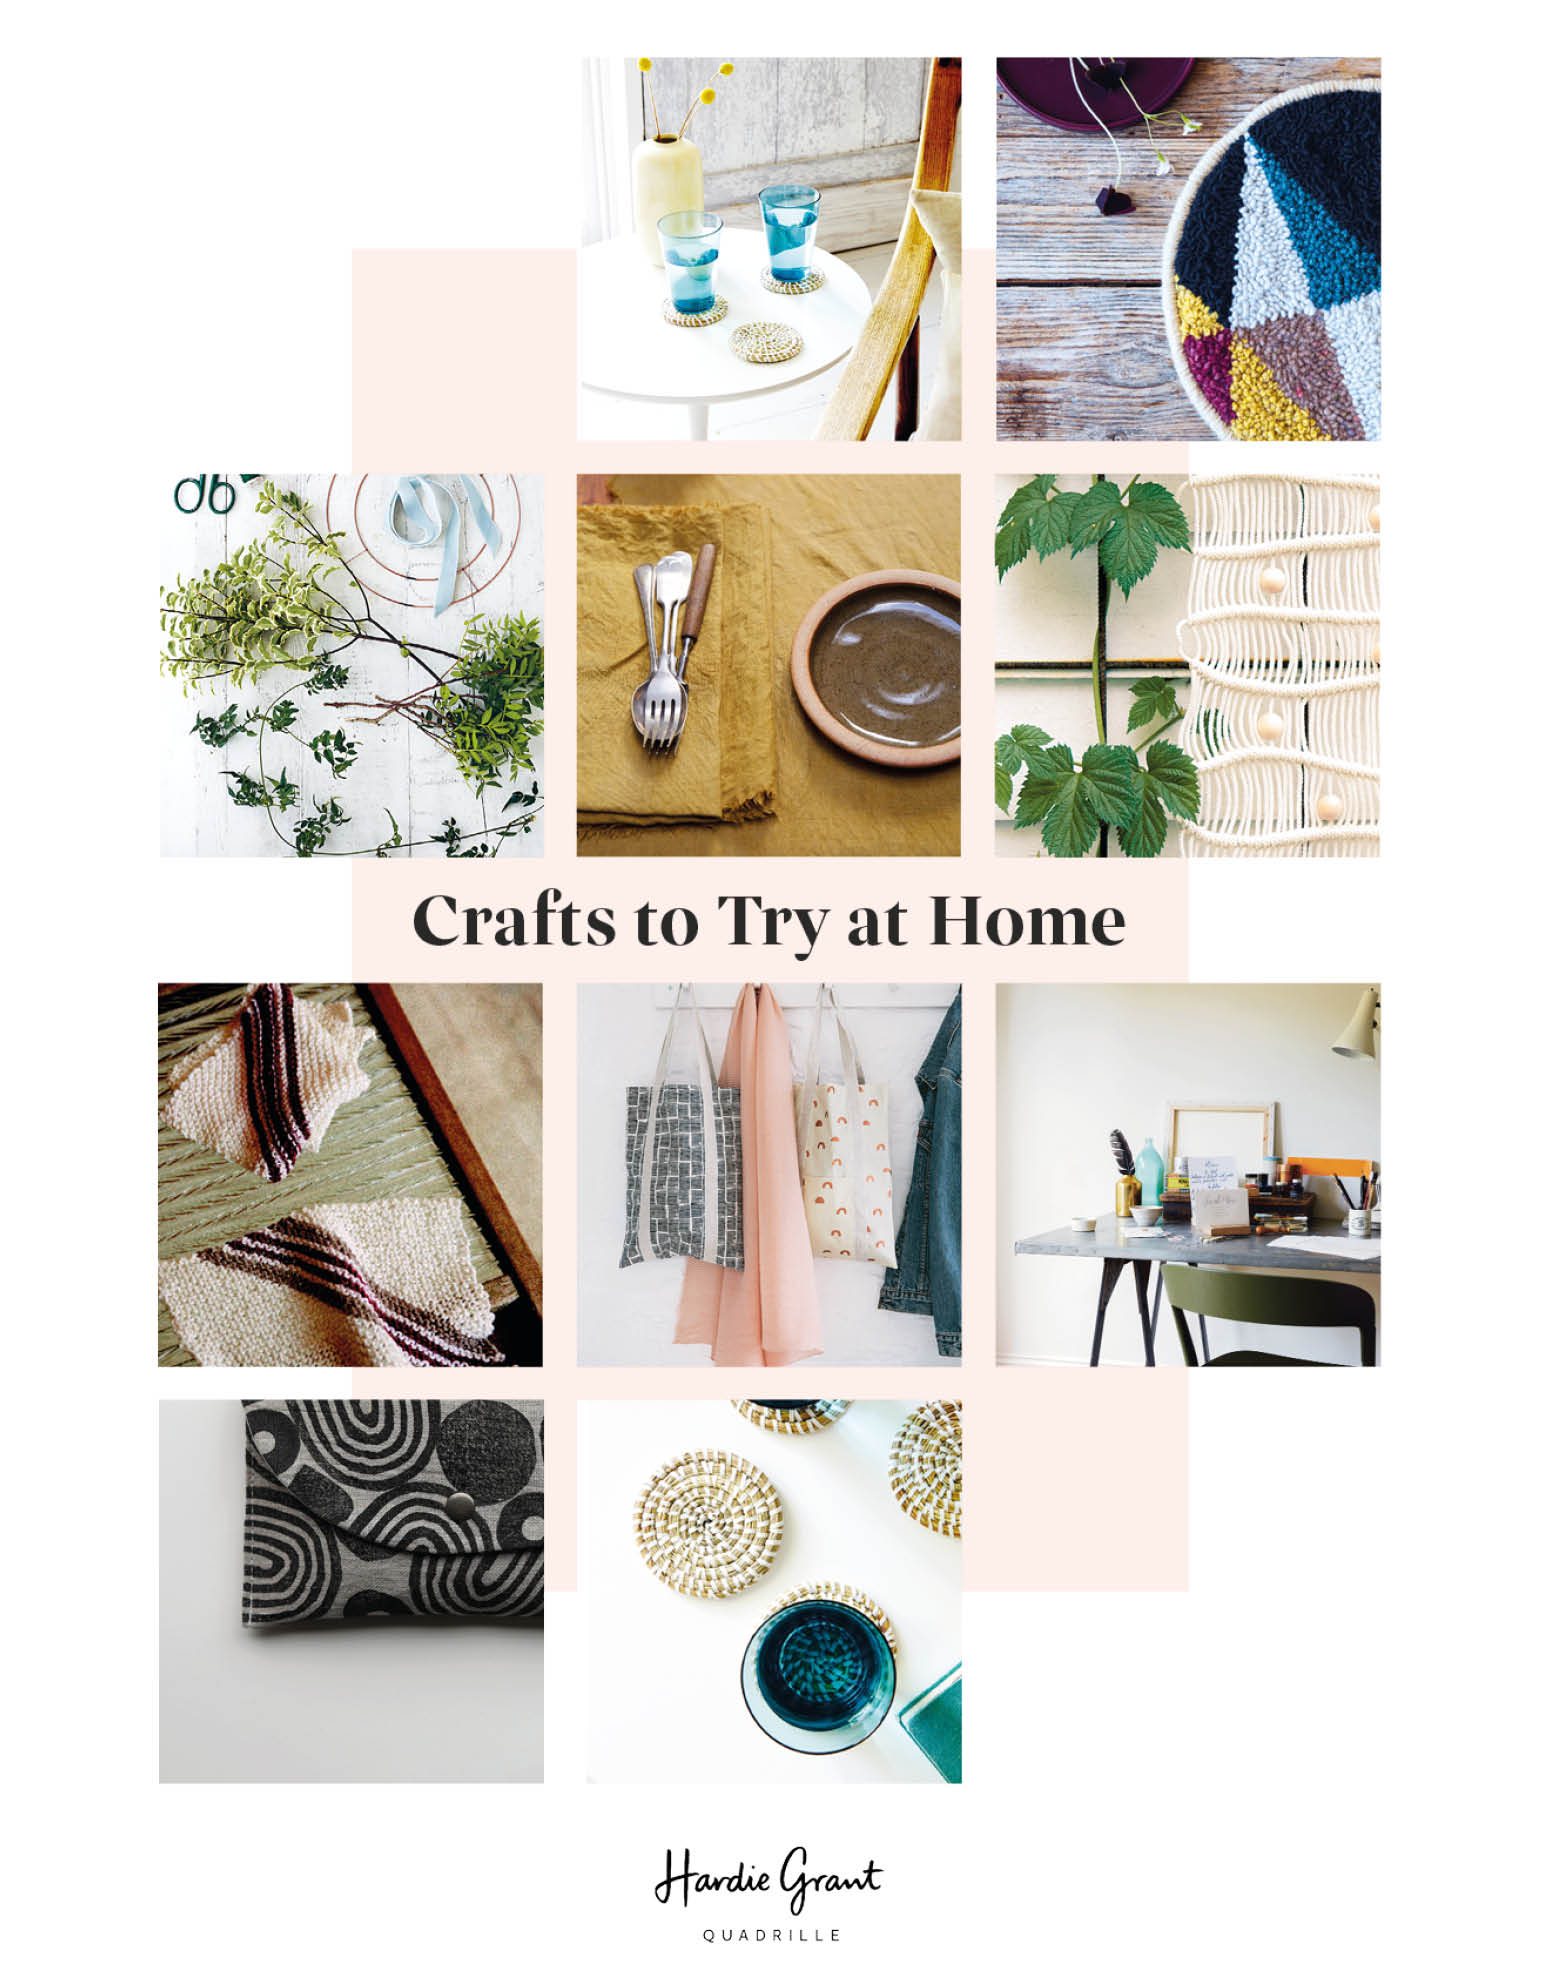 Crafts to Try at Home